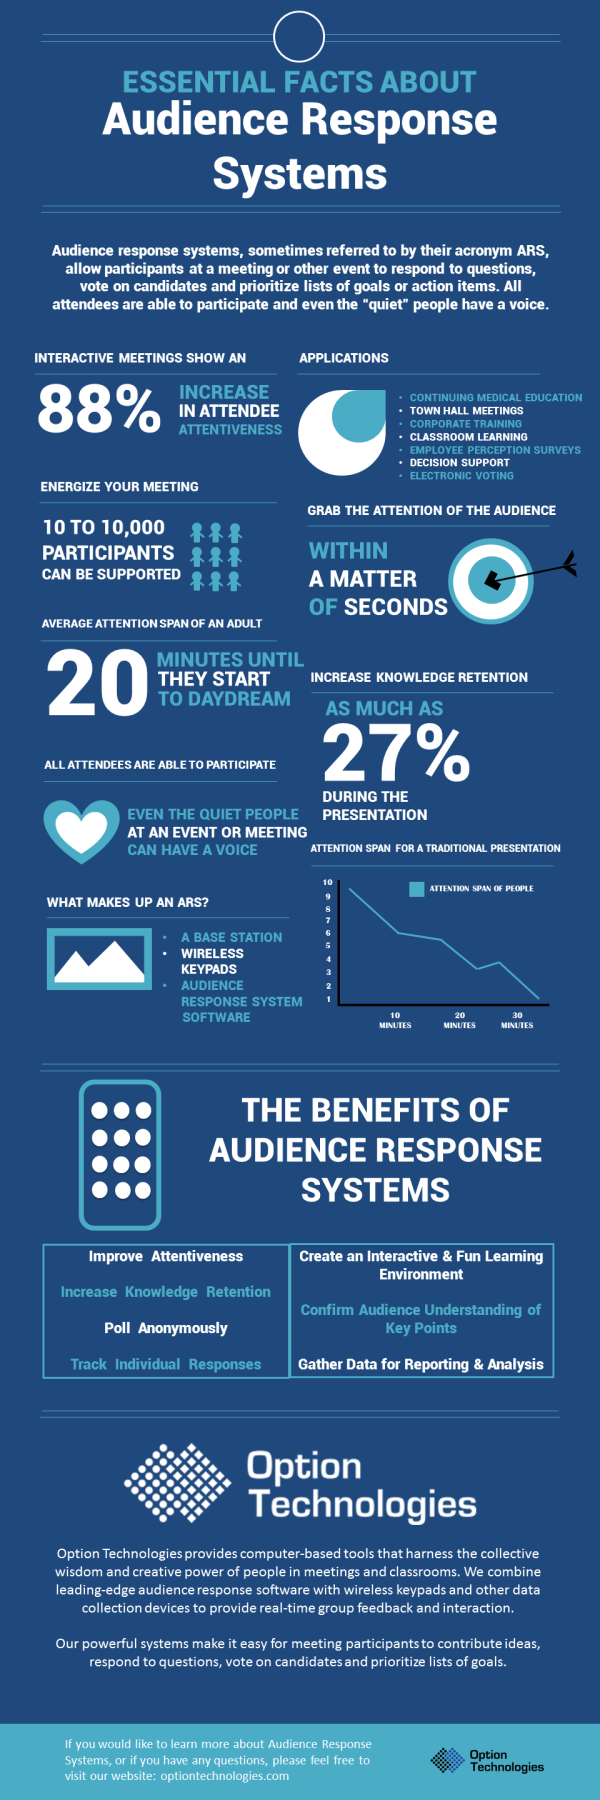 audience-response-systems-infographic